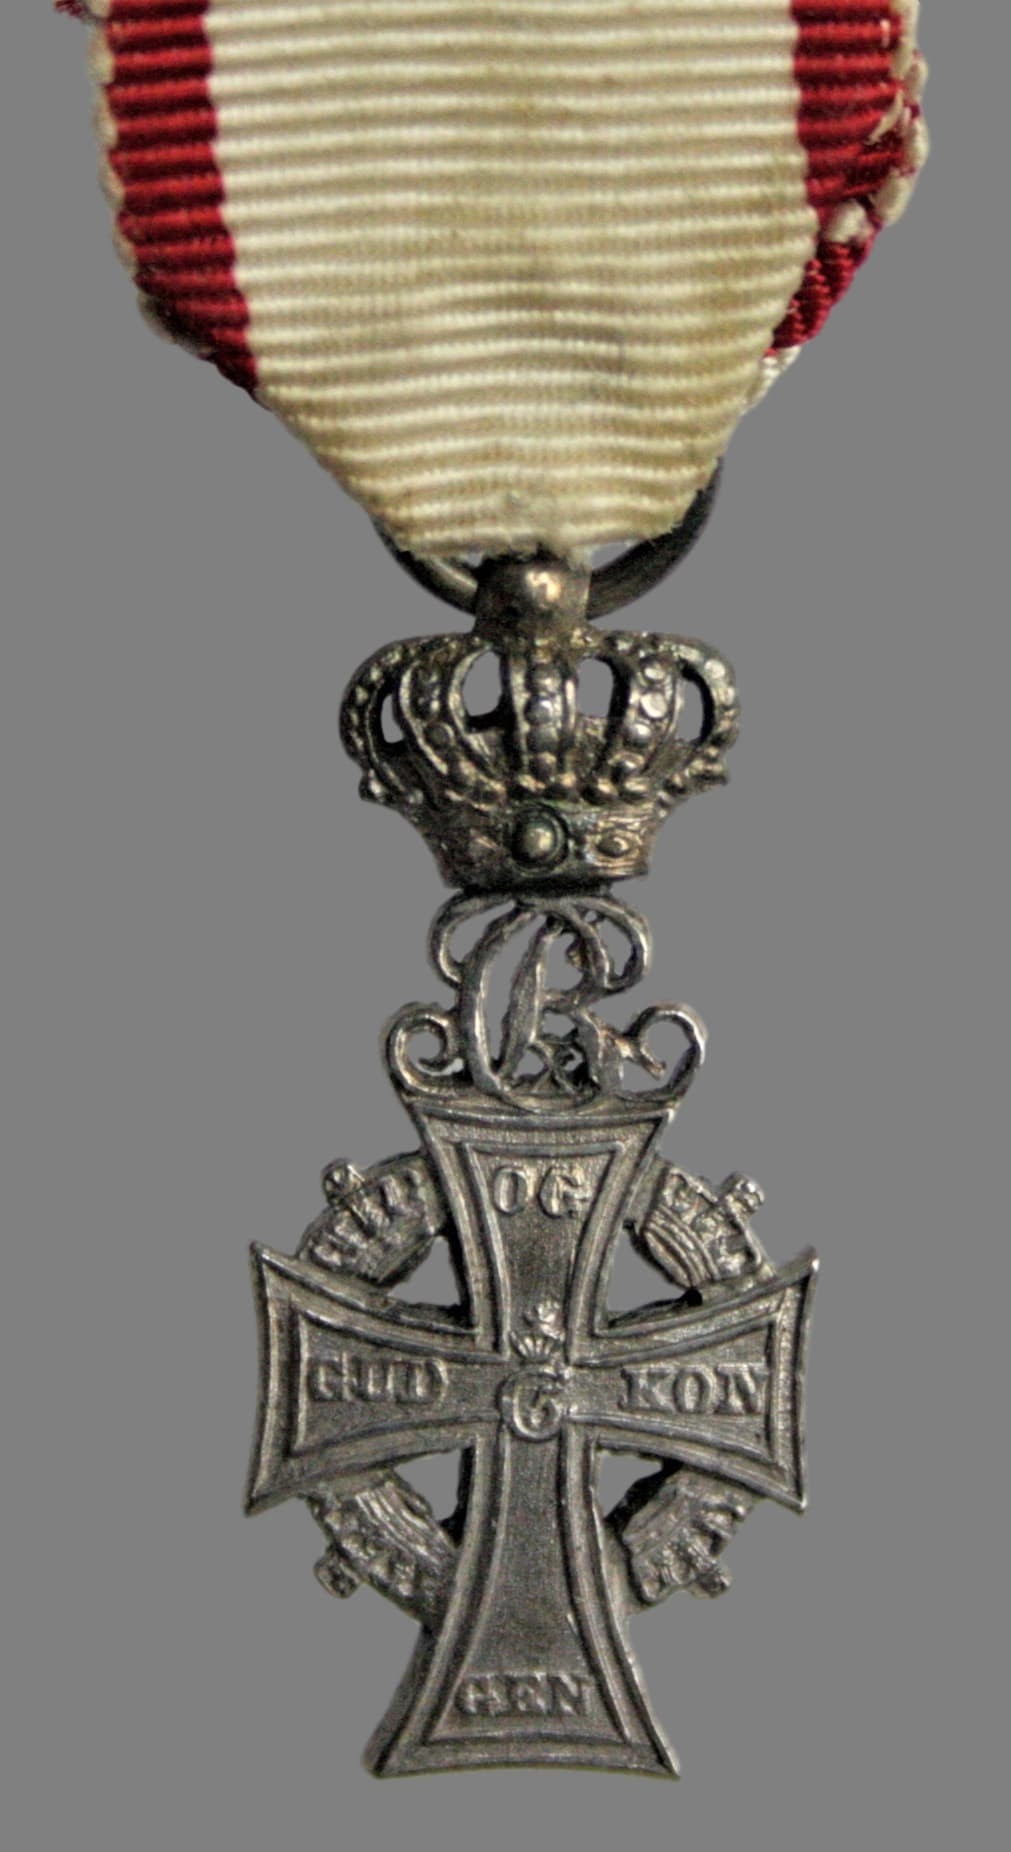 Denmark, Knight of the Order of the Dannebrog